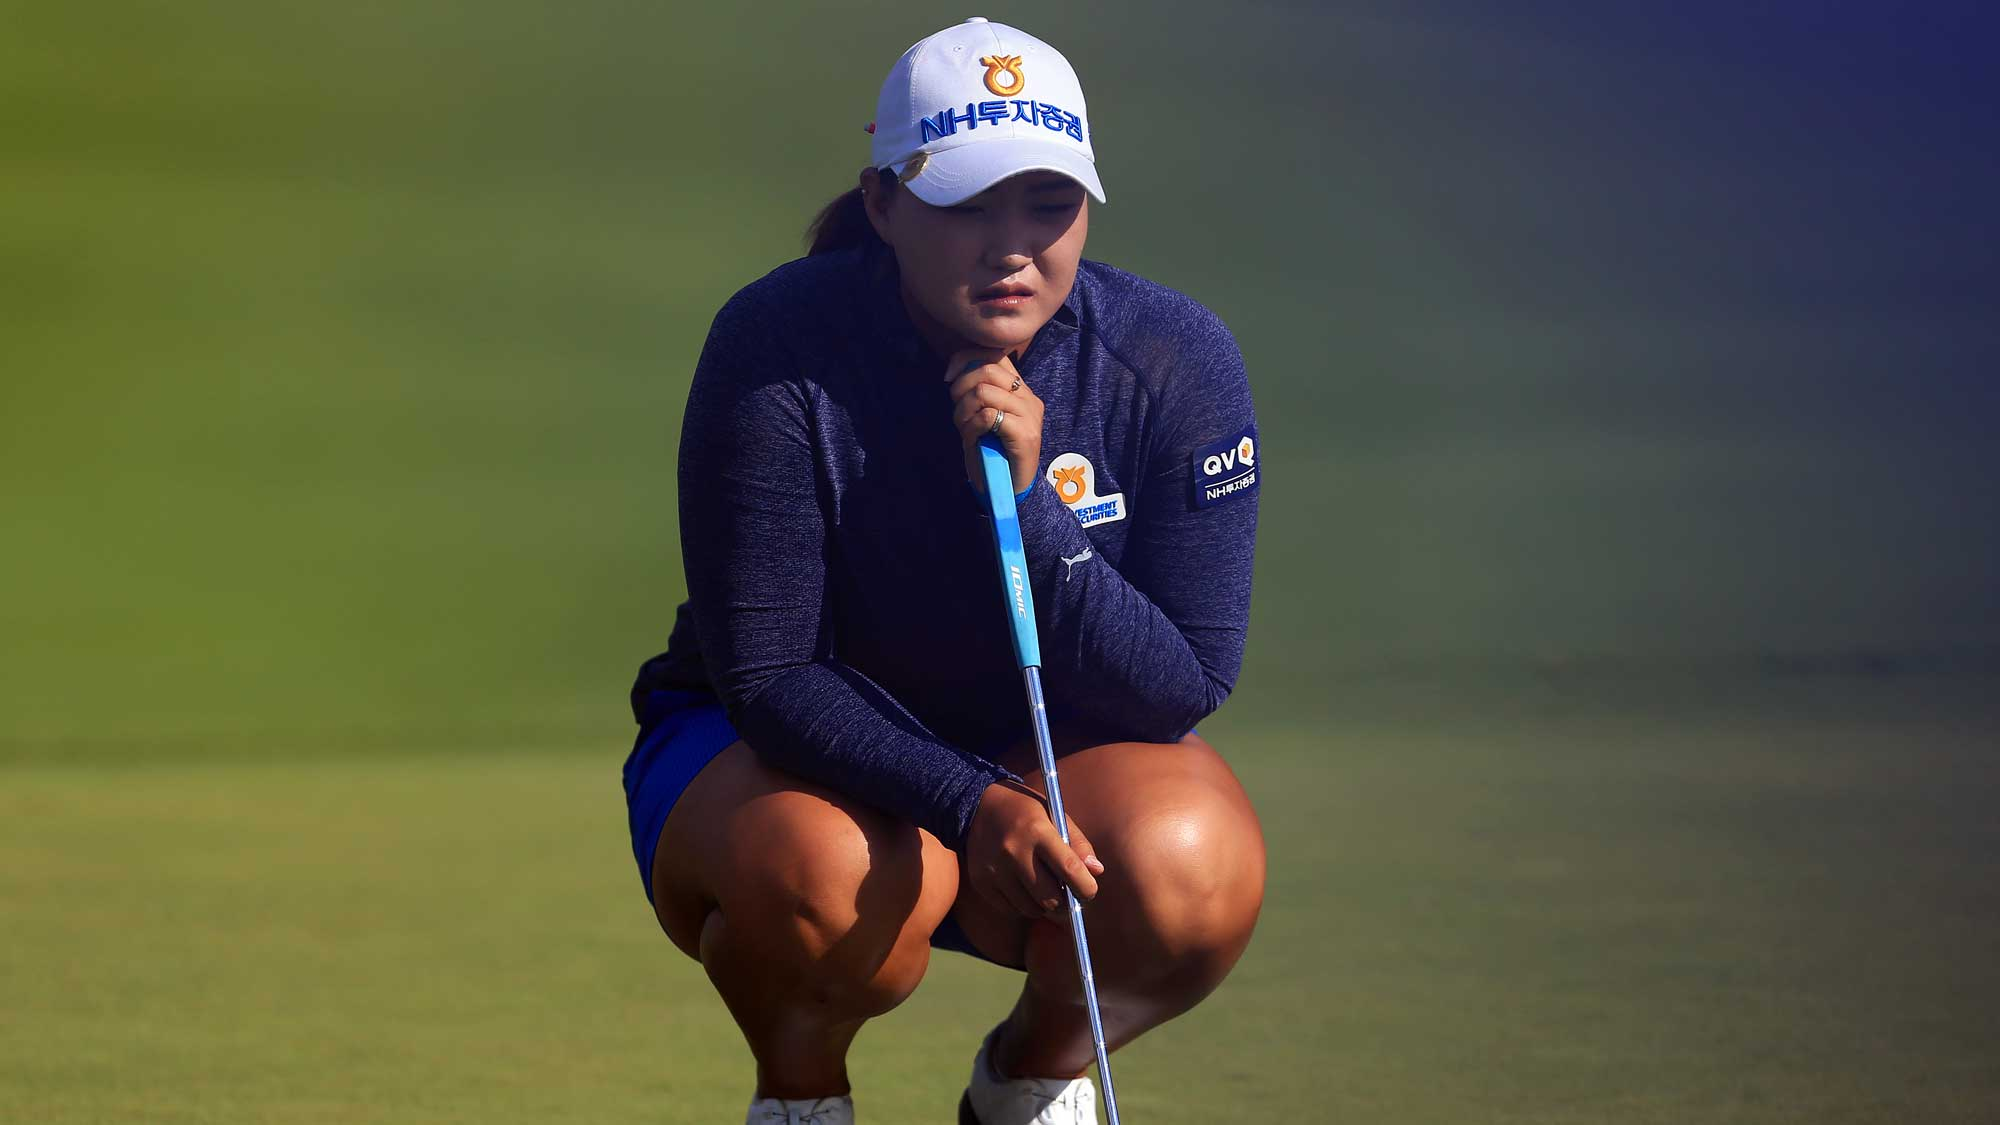 Mirim Lee of South Korea eyes up a putt on the 18th green during round three of the Canadian Pacific Women's Open